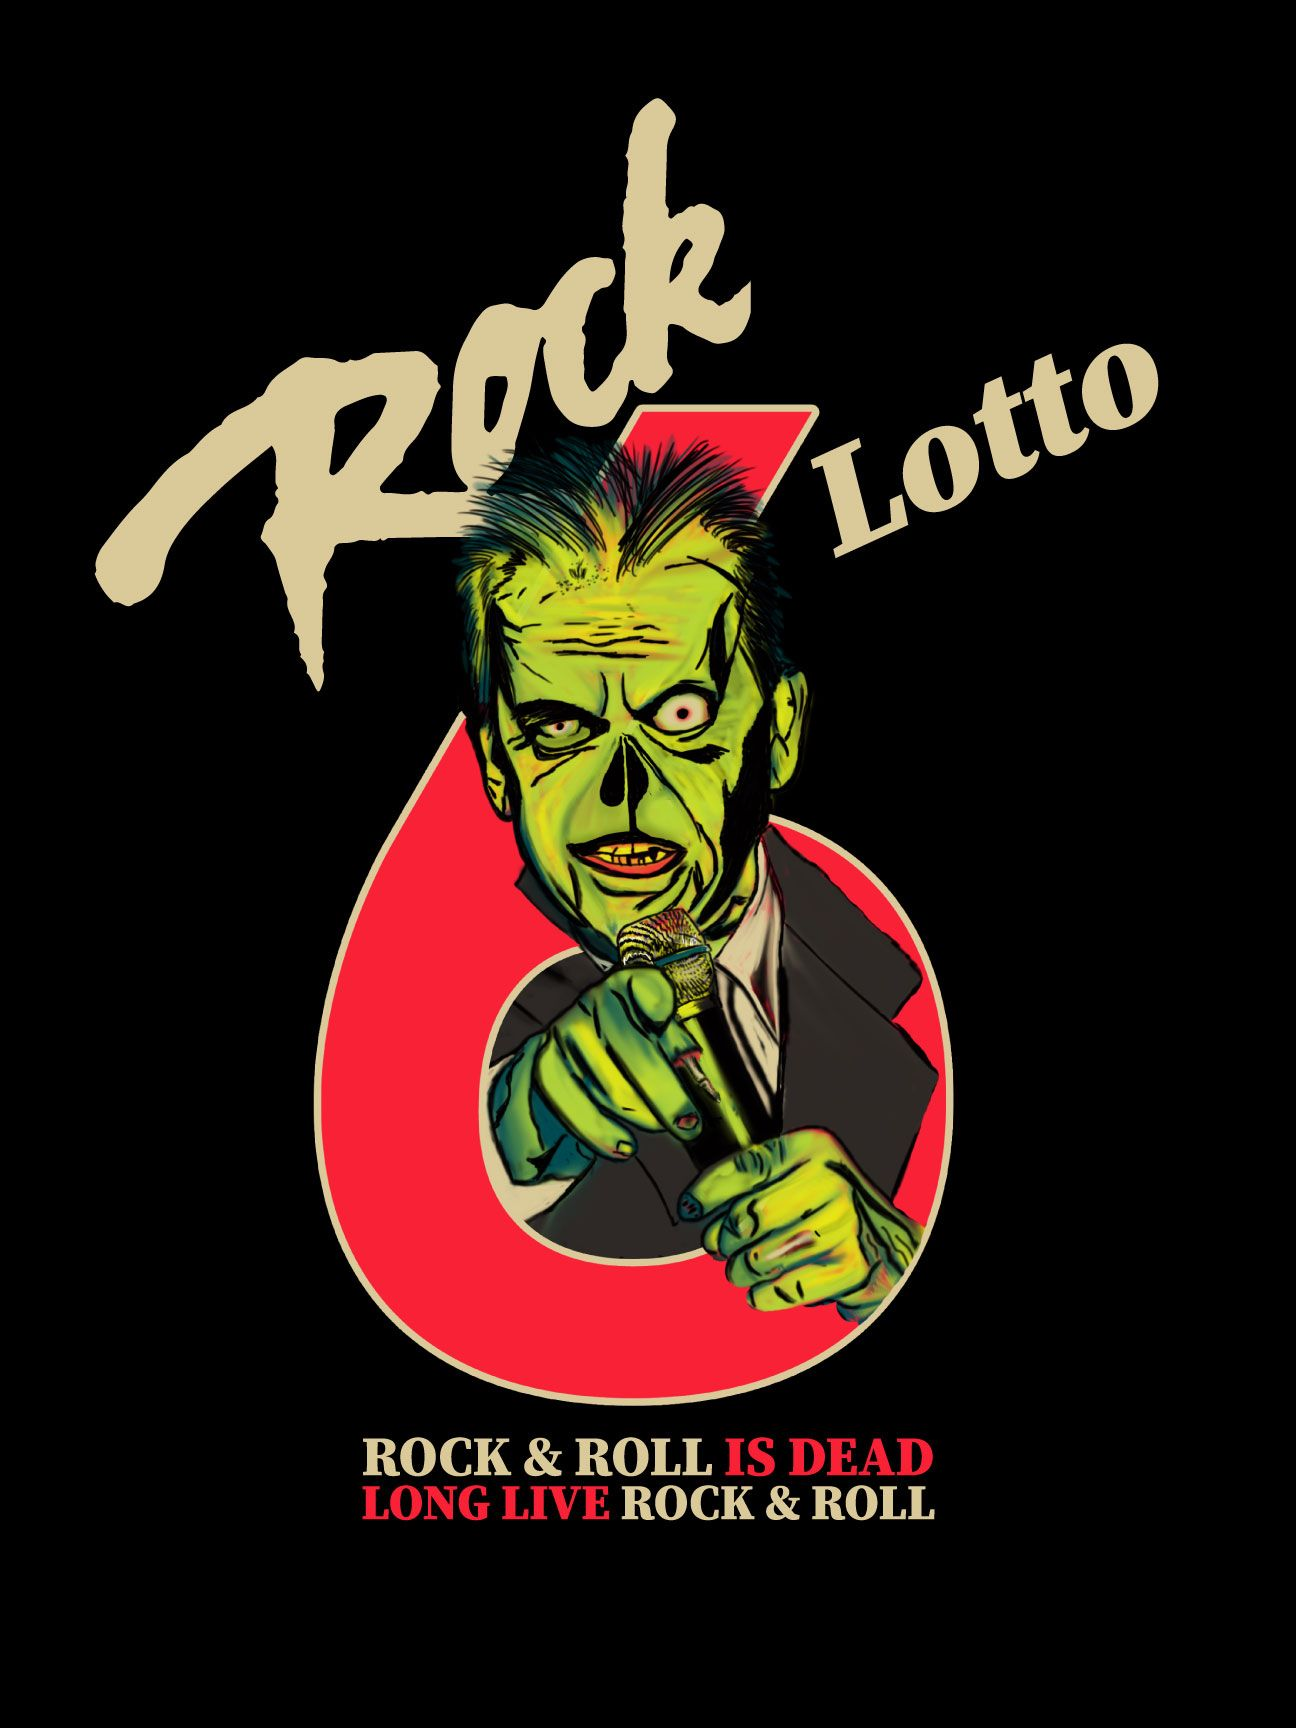 Missoula Rock Lotto VI: Rock is Dead, Long Live Rock & Roll